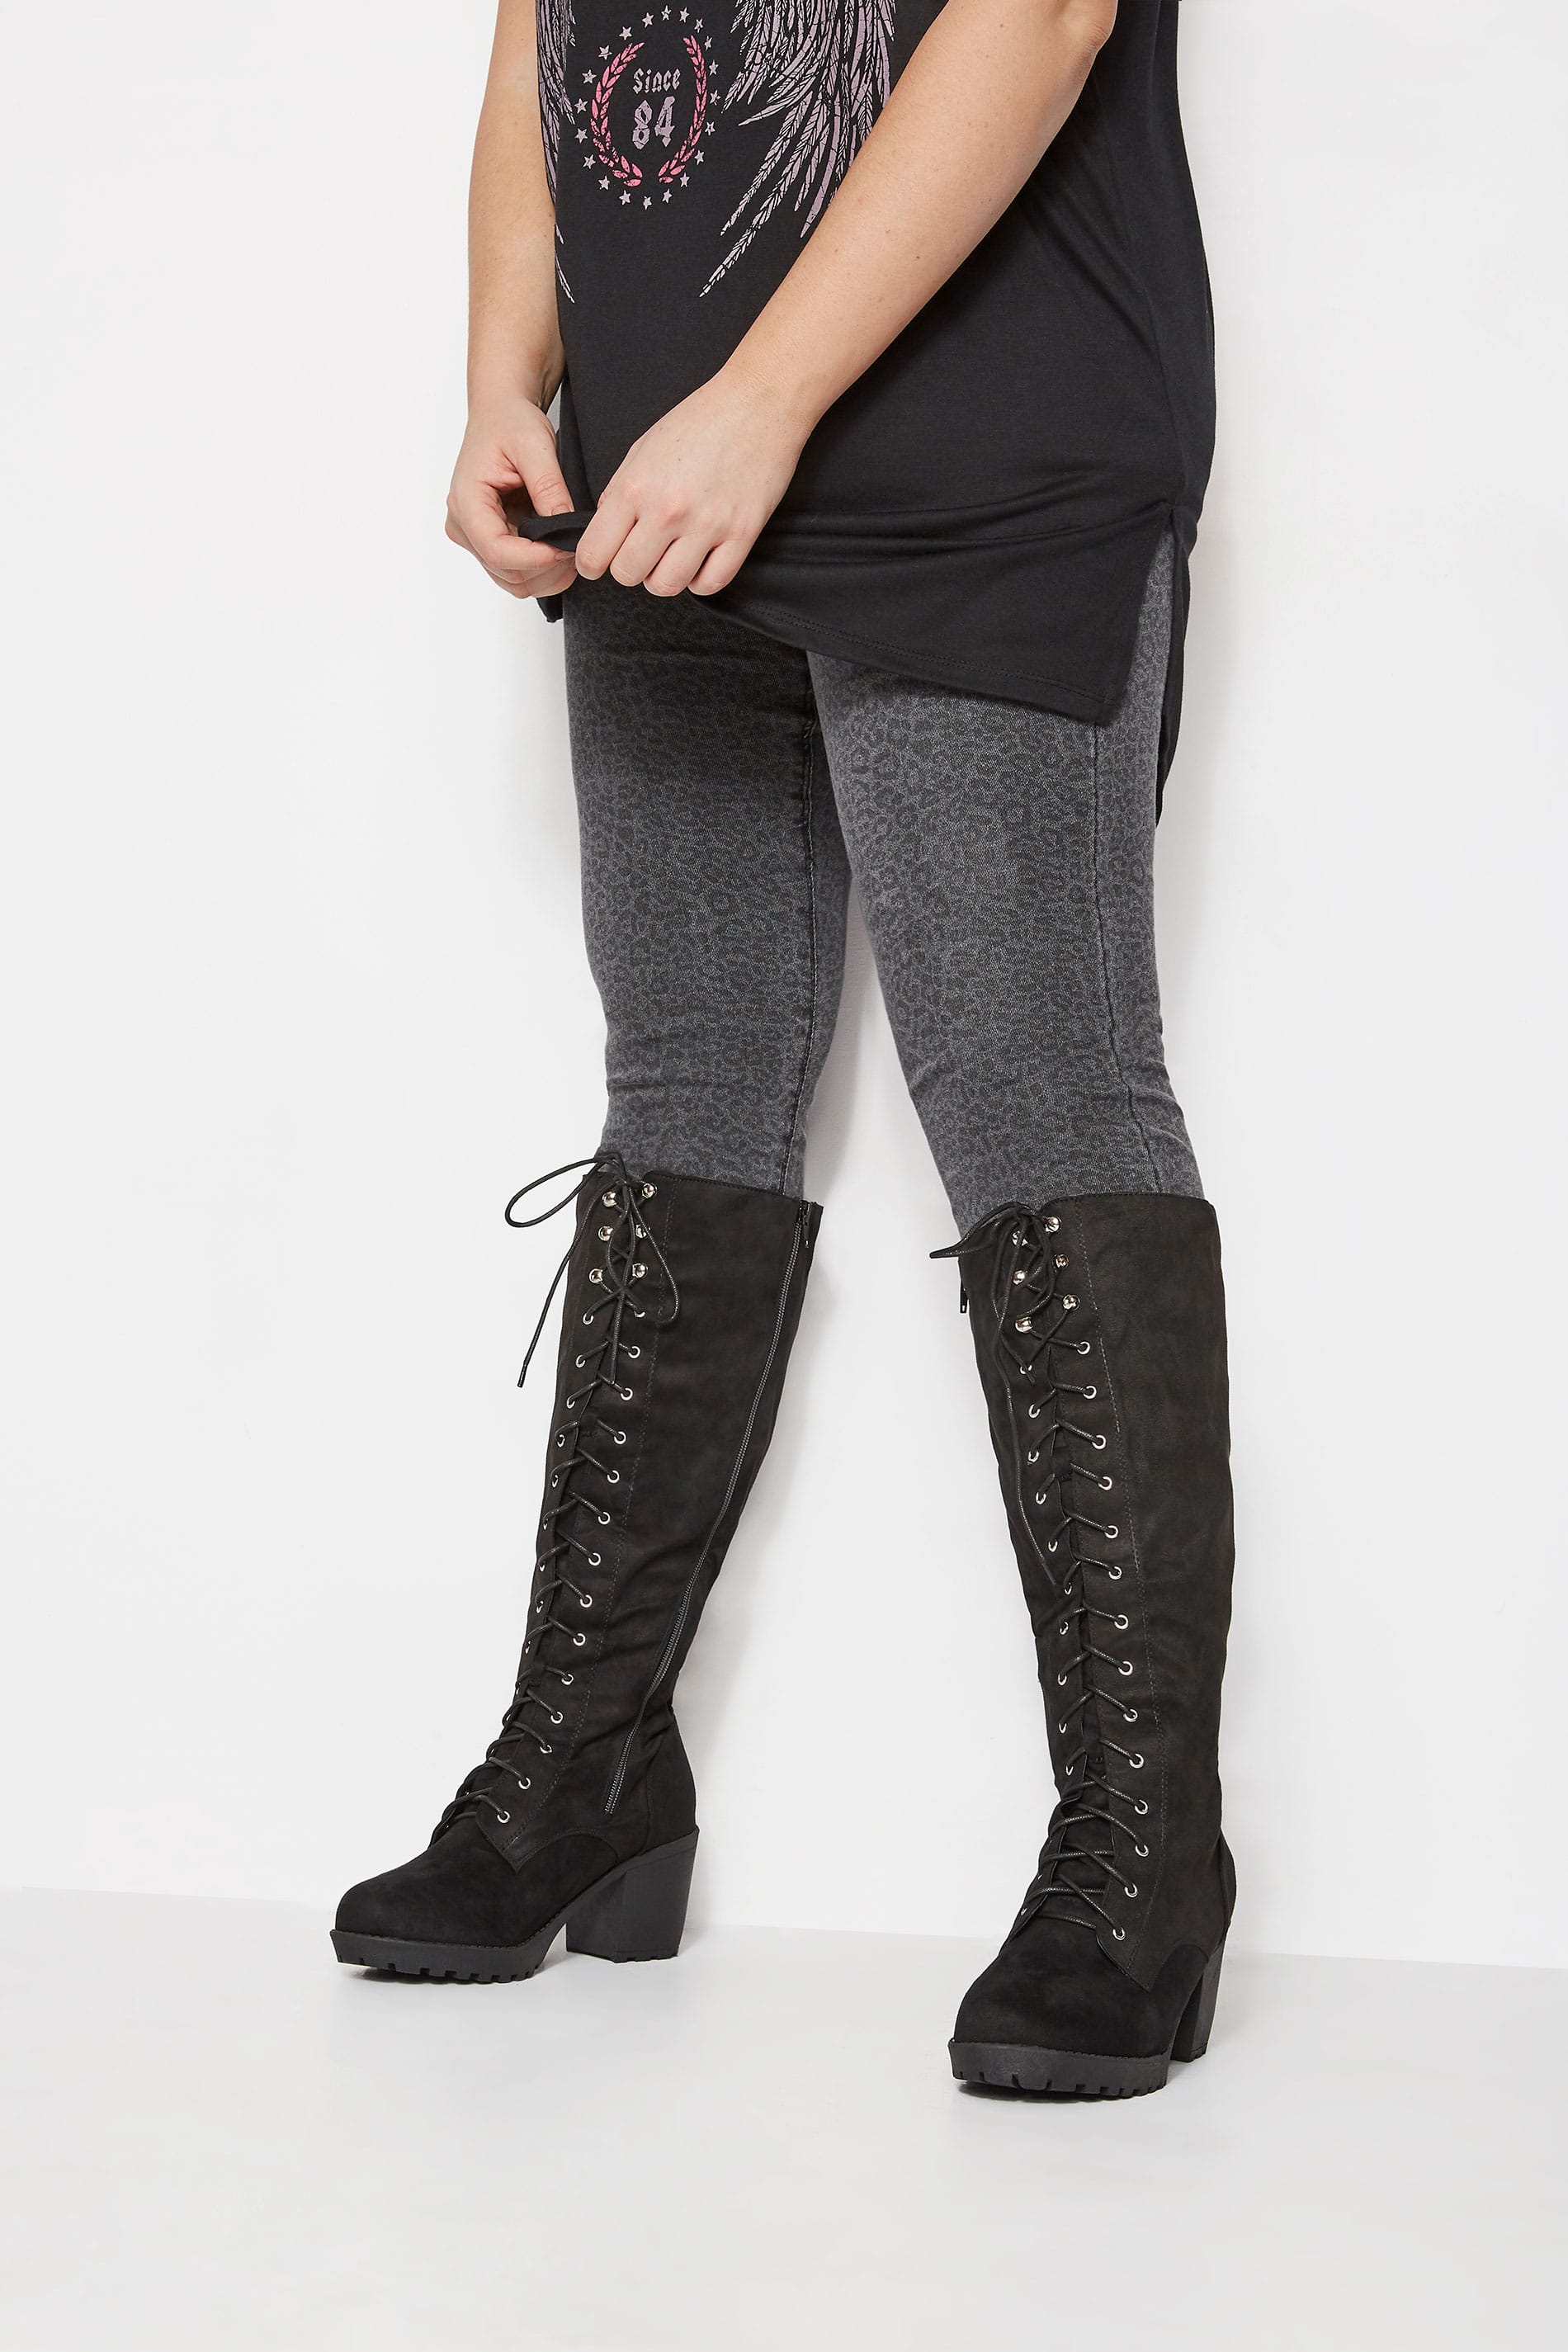 Black Lace Up Heeled Knee High Boots In Extra Wide Fit